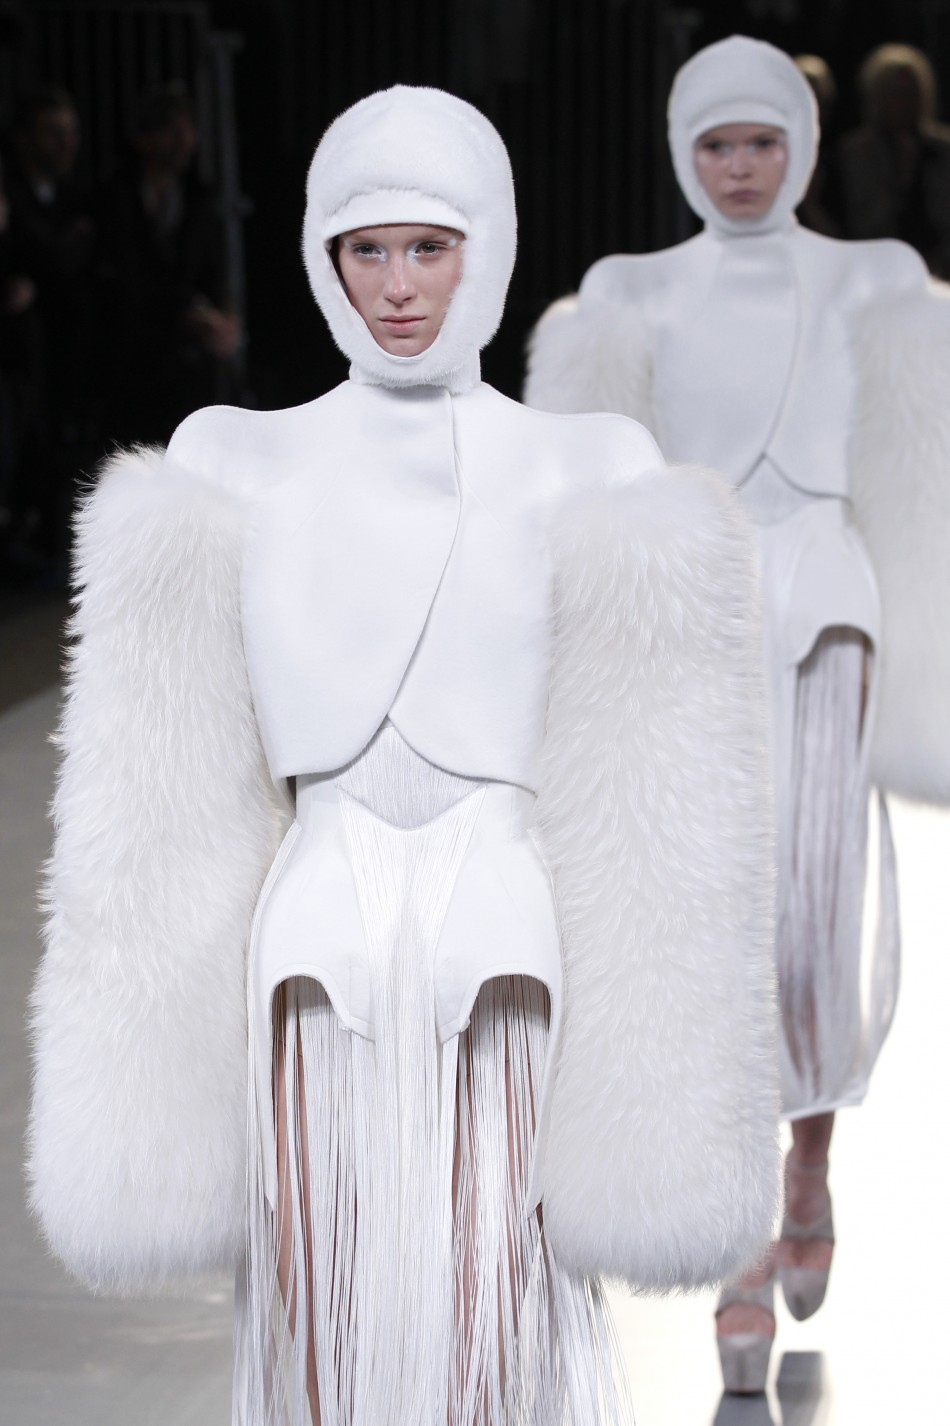 Insects on the Ramp! Complete Look of Mugler's Womenswear Collection at Paris